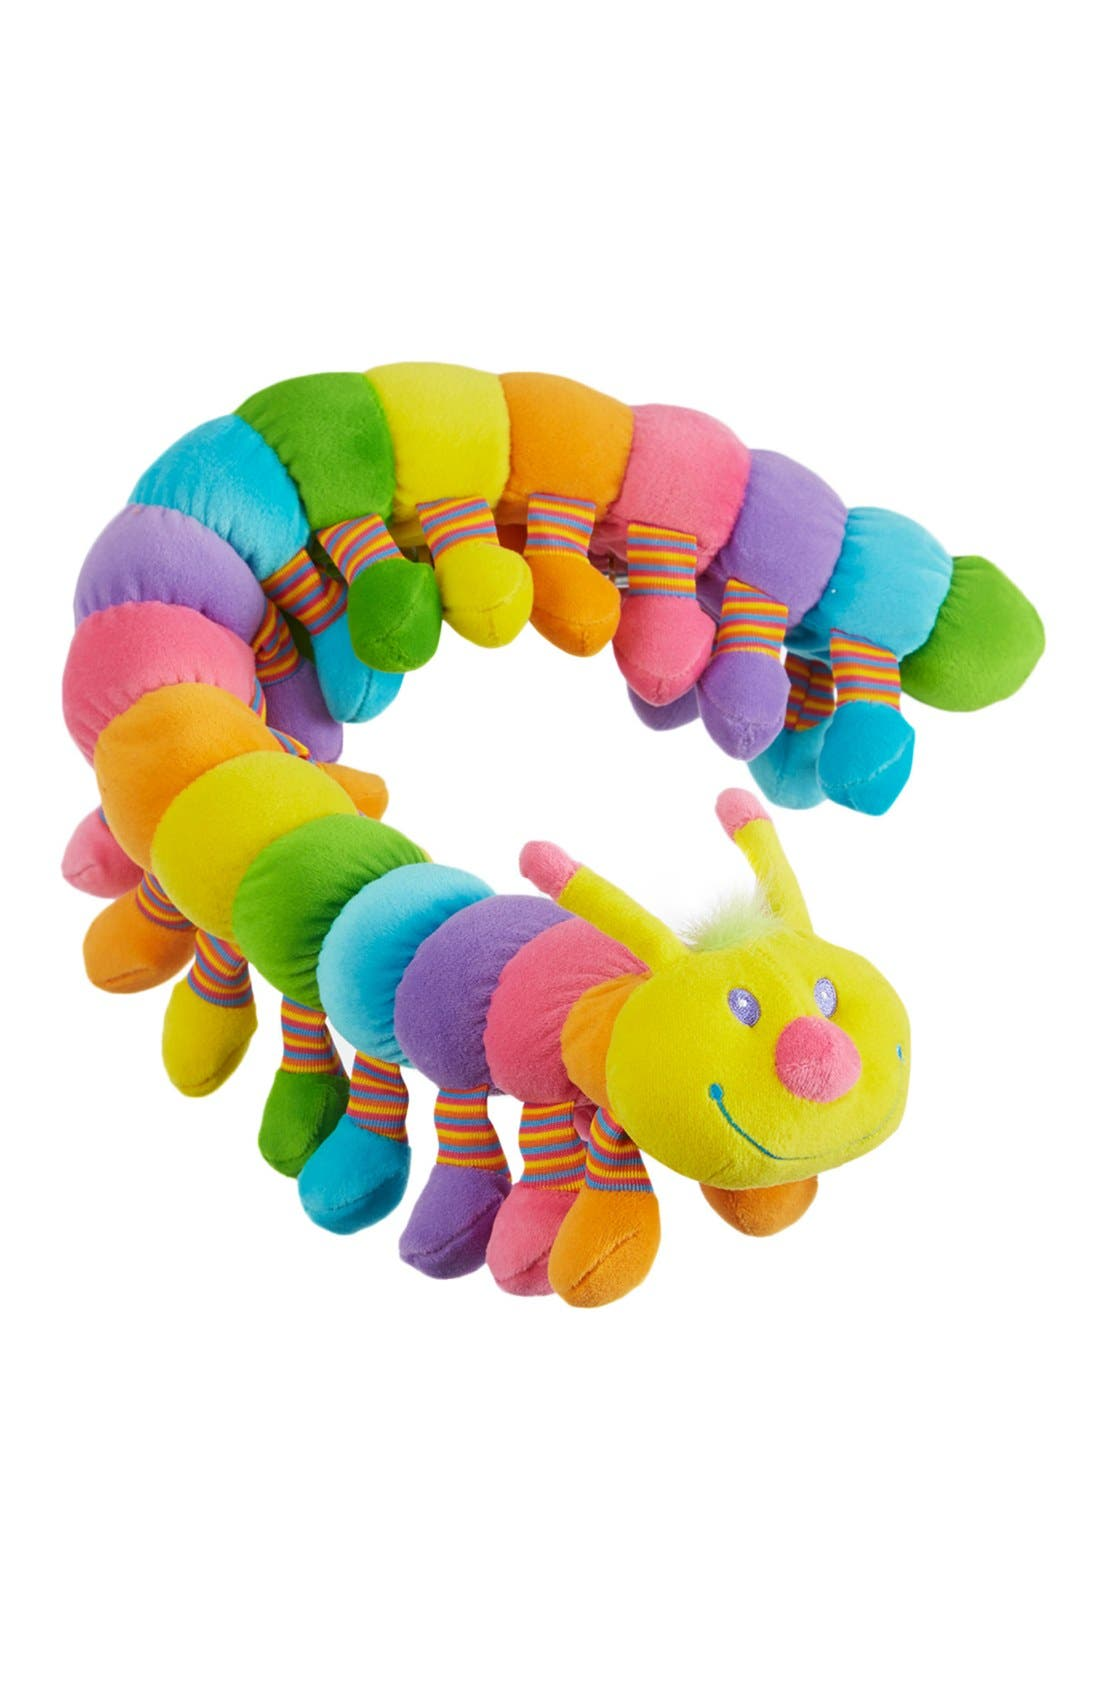 'Longfellow' Plush Caterpillar,                             Alternate thumbnail 2, color,                             YELLOW